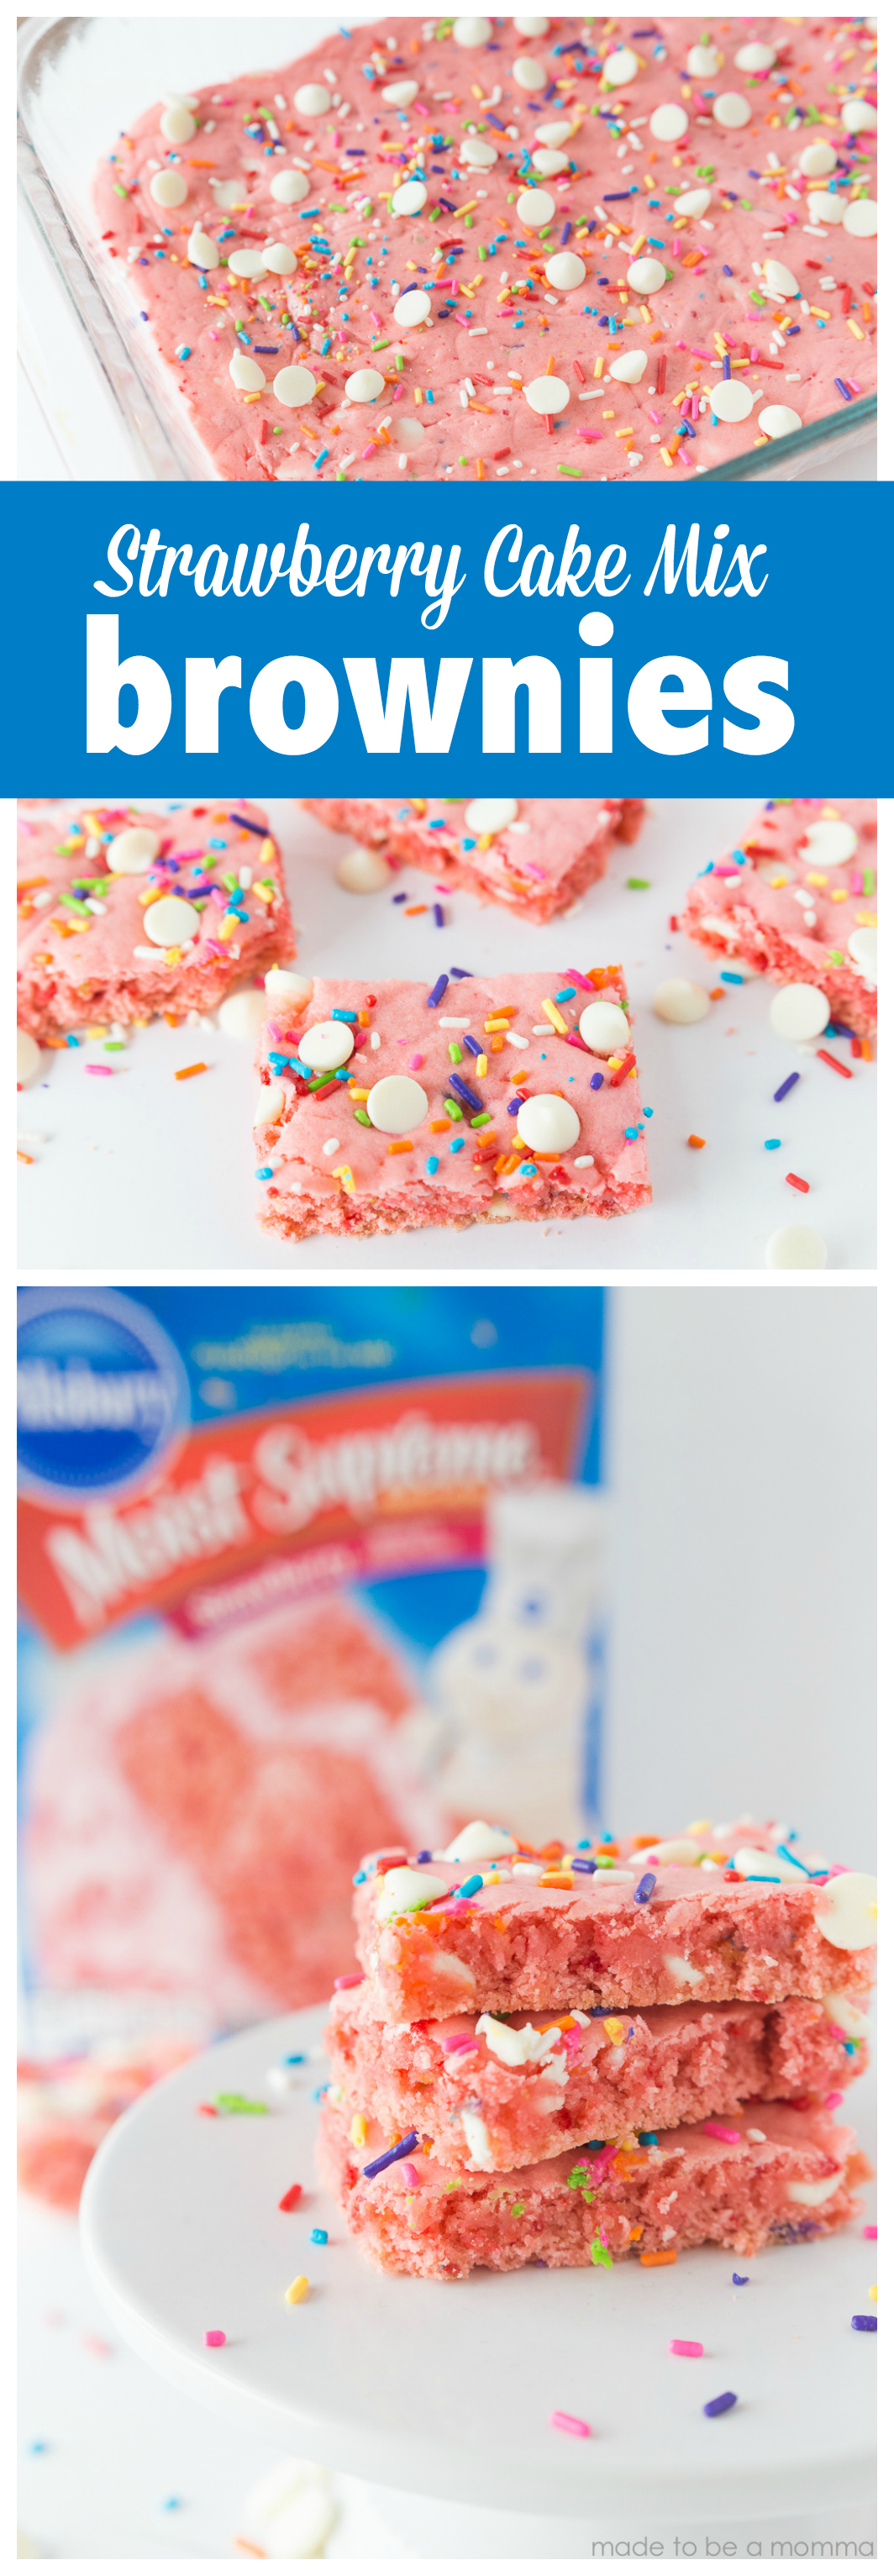 Strawberry Cake Mix Brownies A Fun And Simple Treat Idea By Using